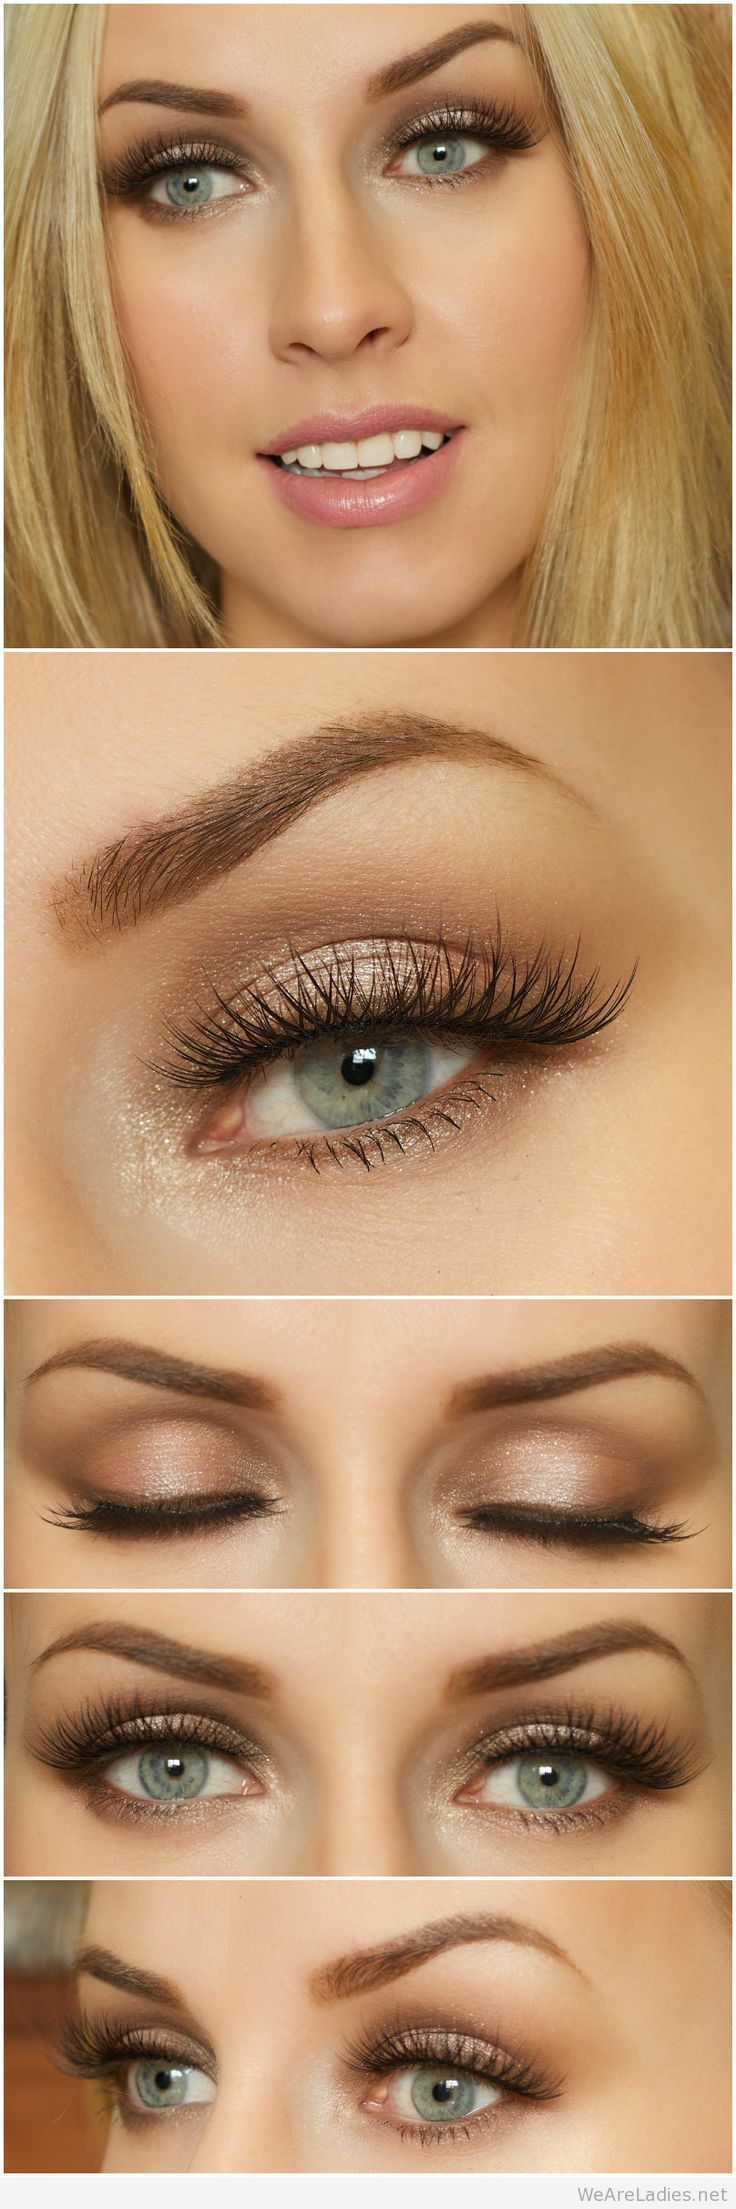 image result for natural looking makeup for fair skin green